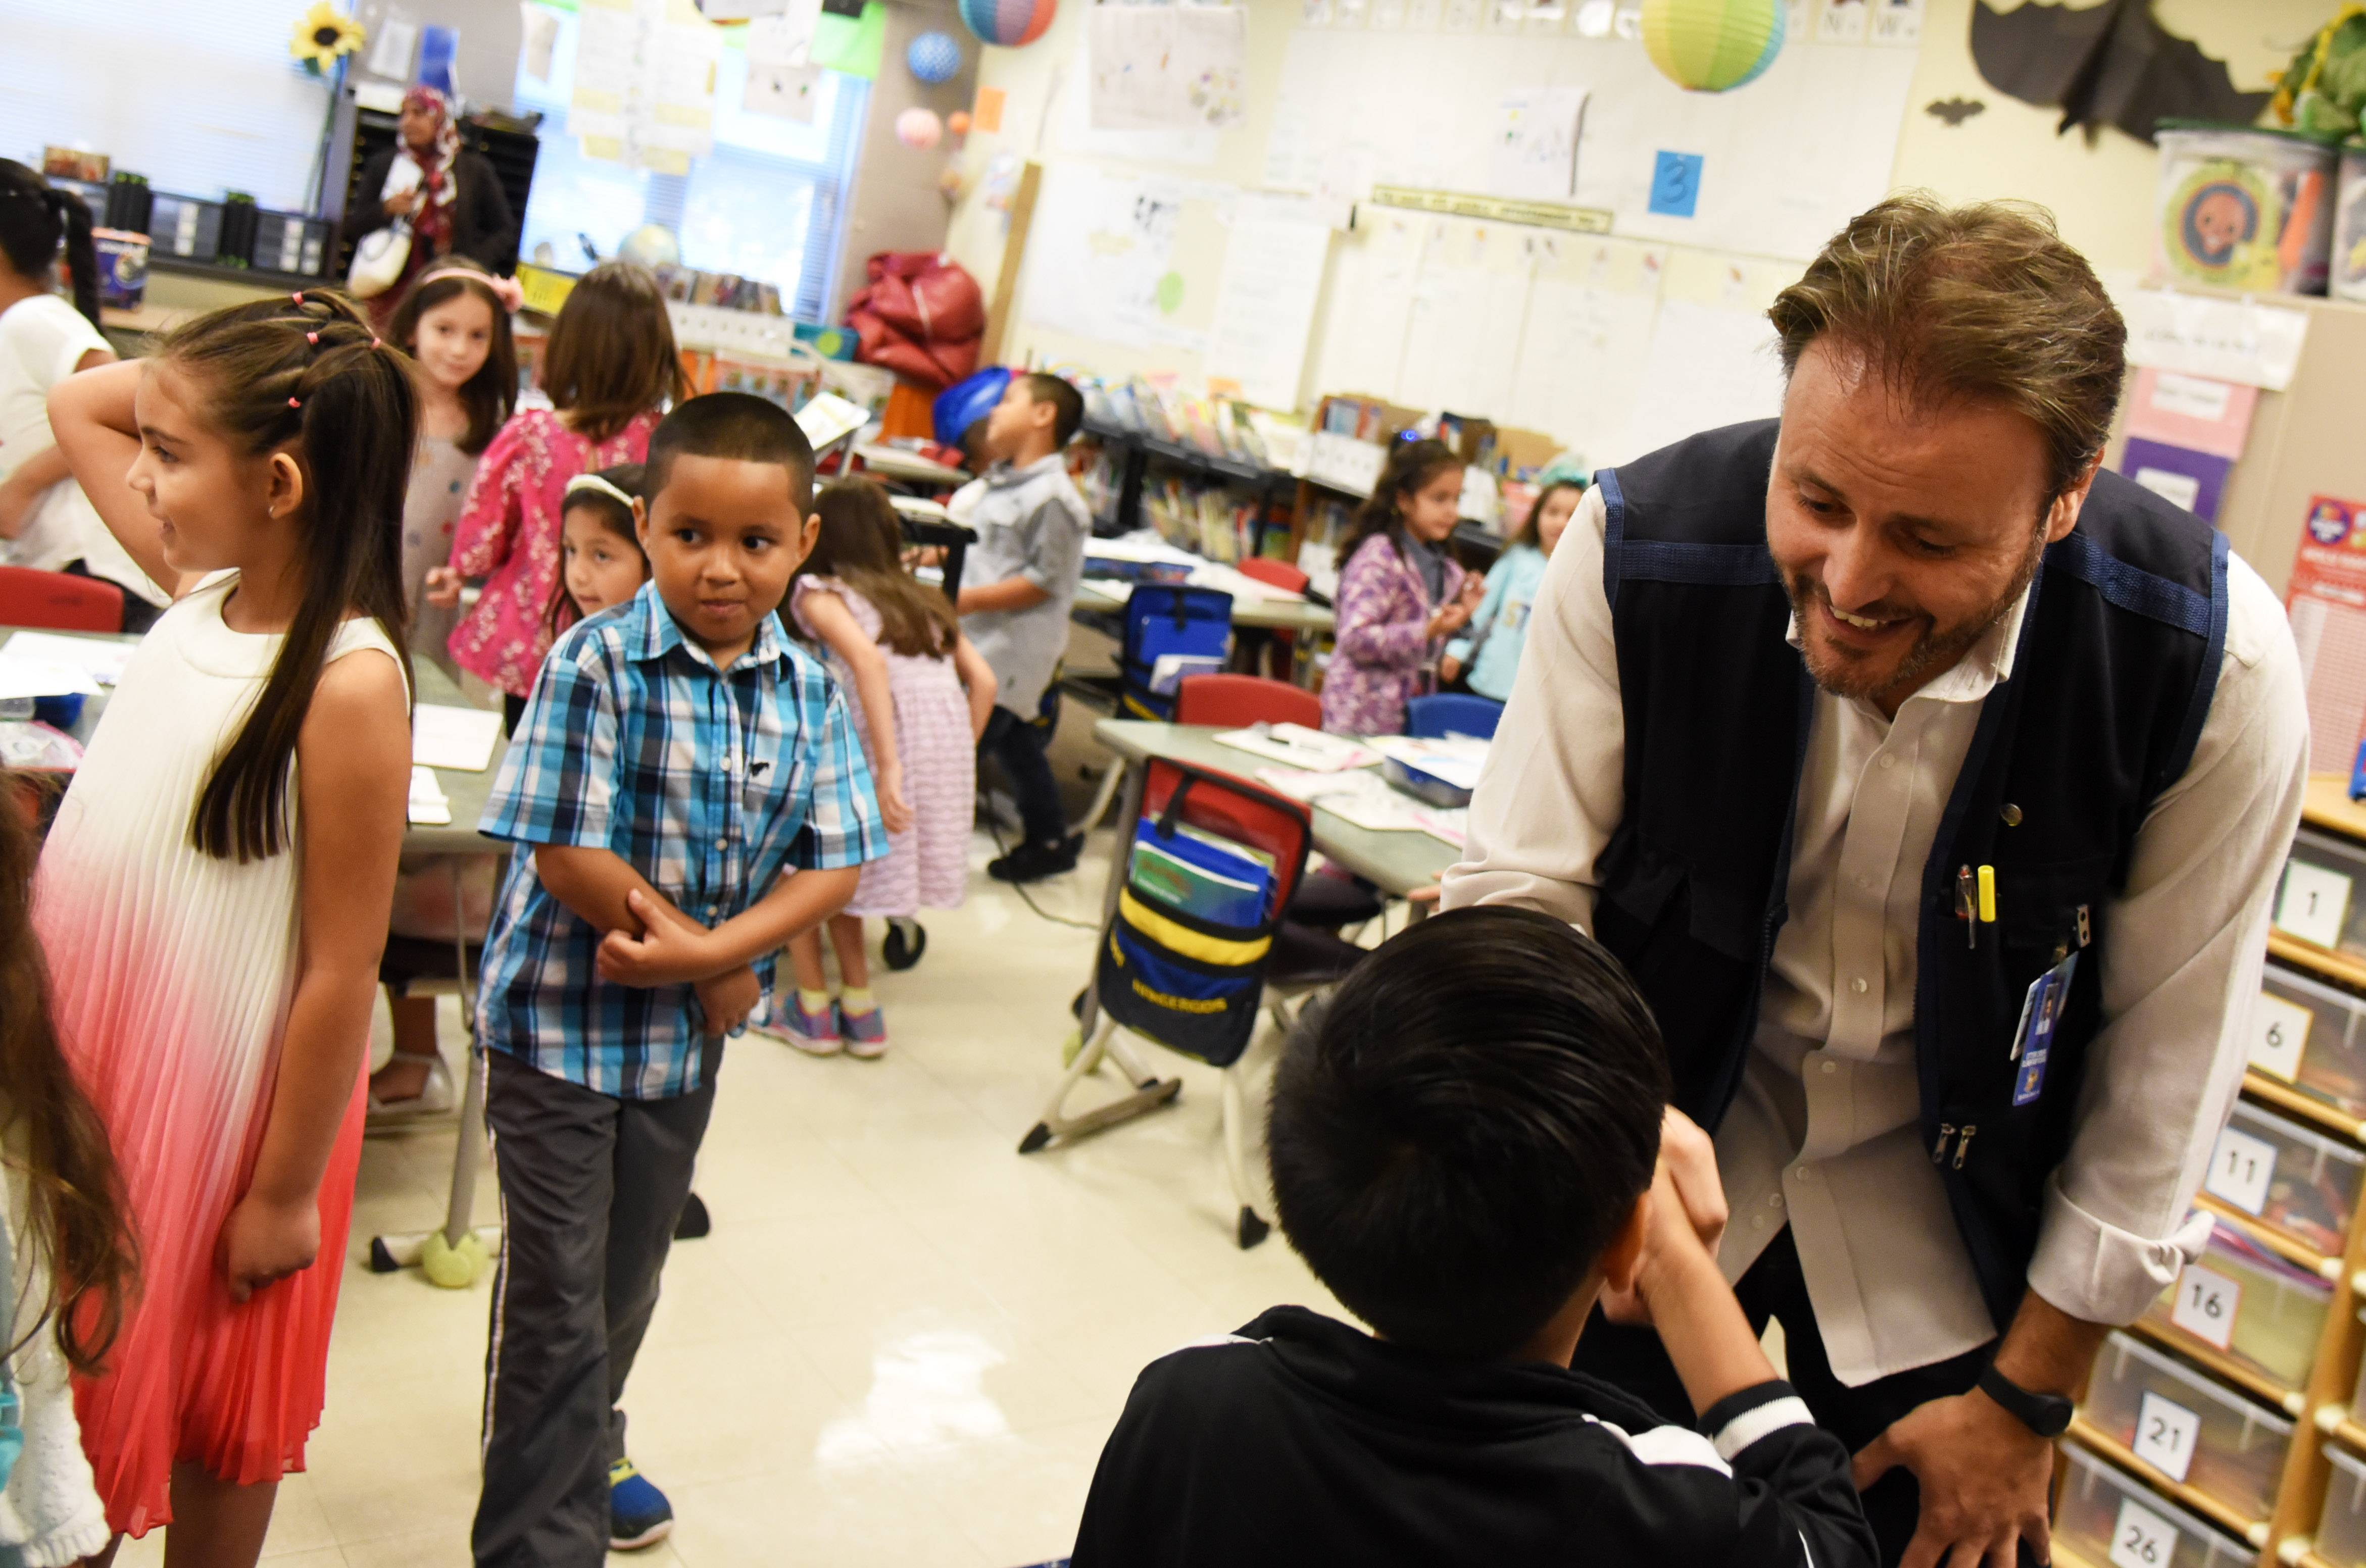 Juan Perez shows first-graders how to properly shake hands and look someone in the eye Thursday at Otter Creek Elementary School in Elgin. He helped establish the school's dual language program in 2011.